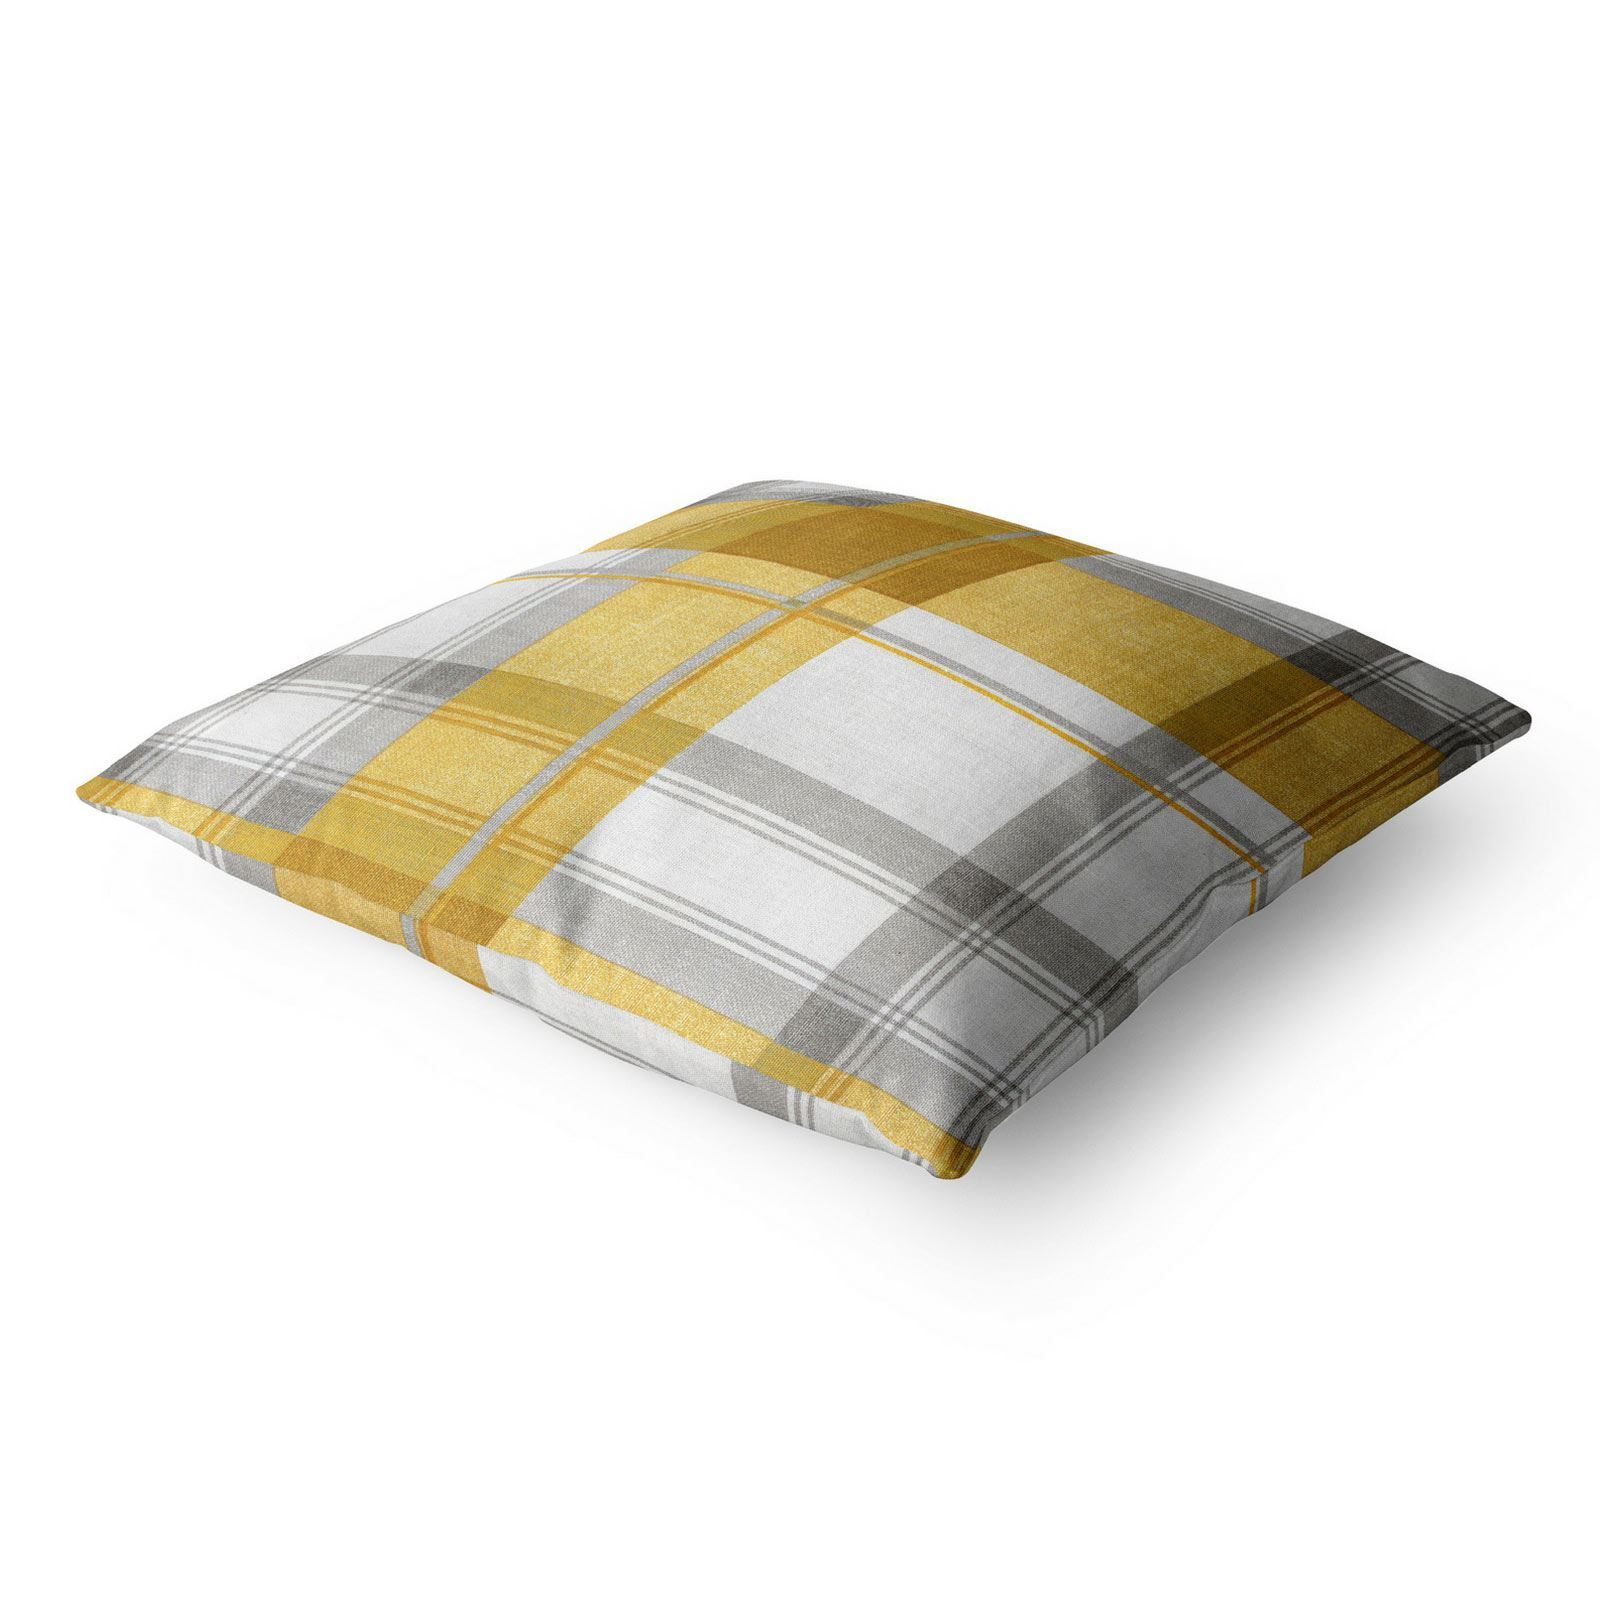 Grey-Ochre-Mustard-Cushion-Cover-Collection-17-034-18-034-Covers-Filled-Cushions thumbnail 21